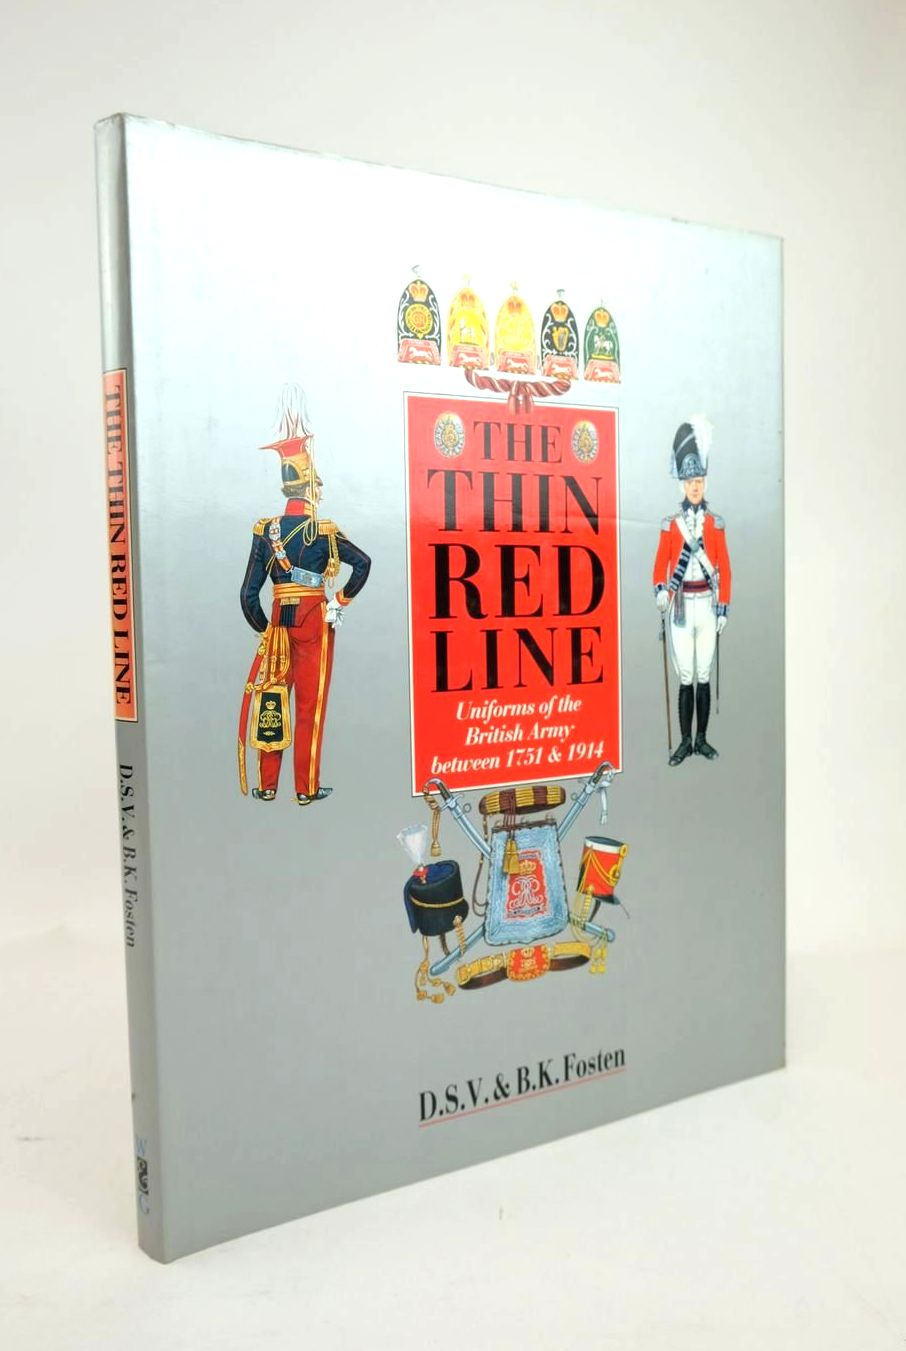 Photo of THE THIN RED LINE: UNIFORMS OF THE BRITISH ARMY BETWEEN 1751 & 1914- Stock Number: 1820864